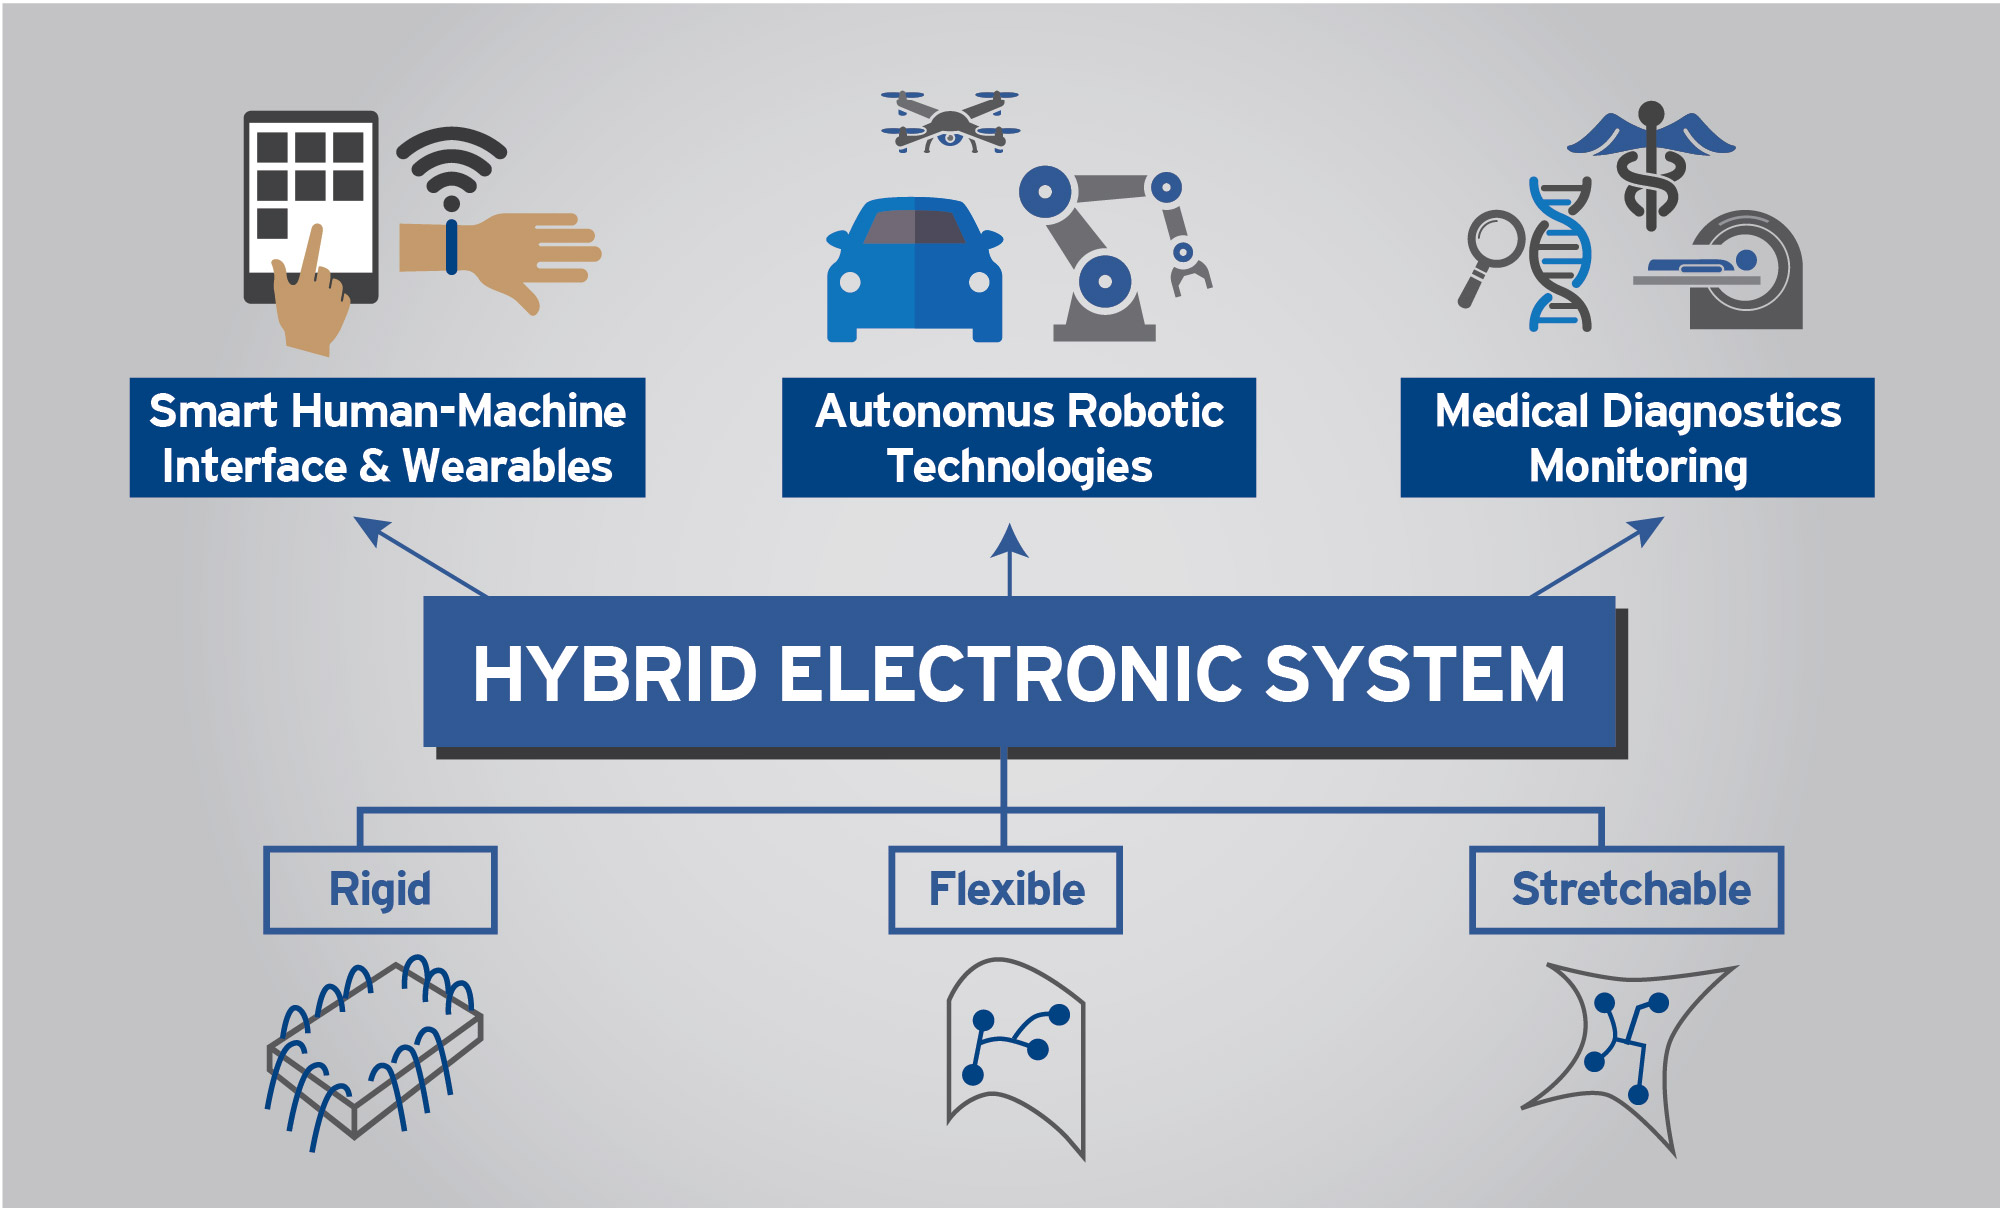 The new research initiative, HIFES, hopes to integrate rigid and flexible electronic components into systems that will address various applications